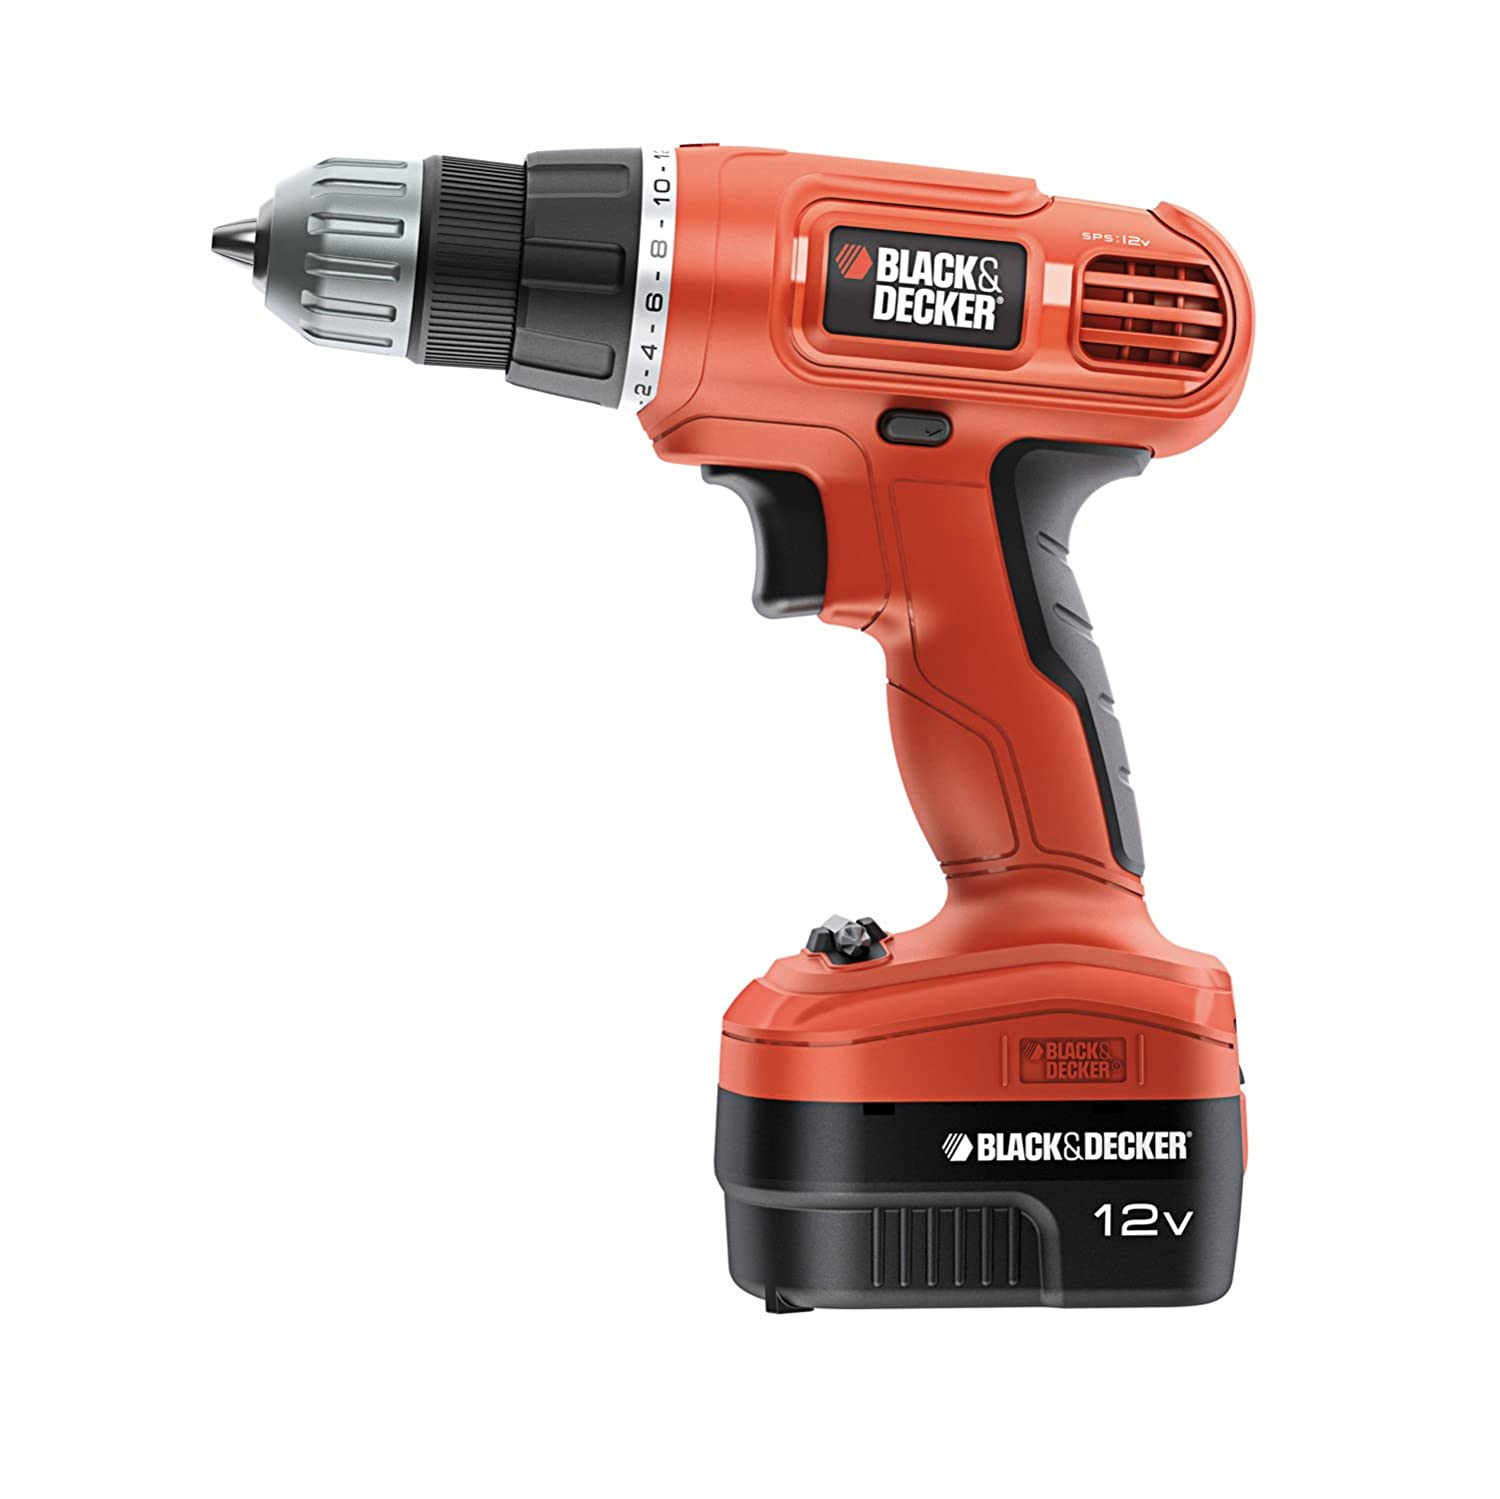 Perceuse visseuse vente privee - Perceuse black et decker 18v ...